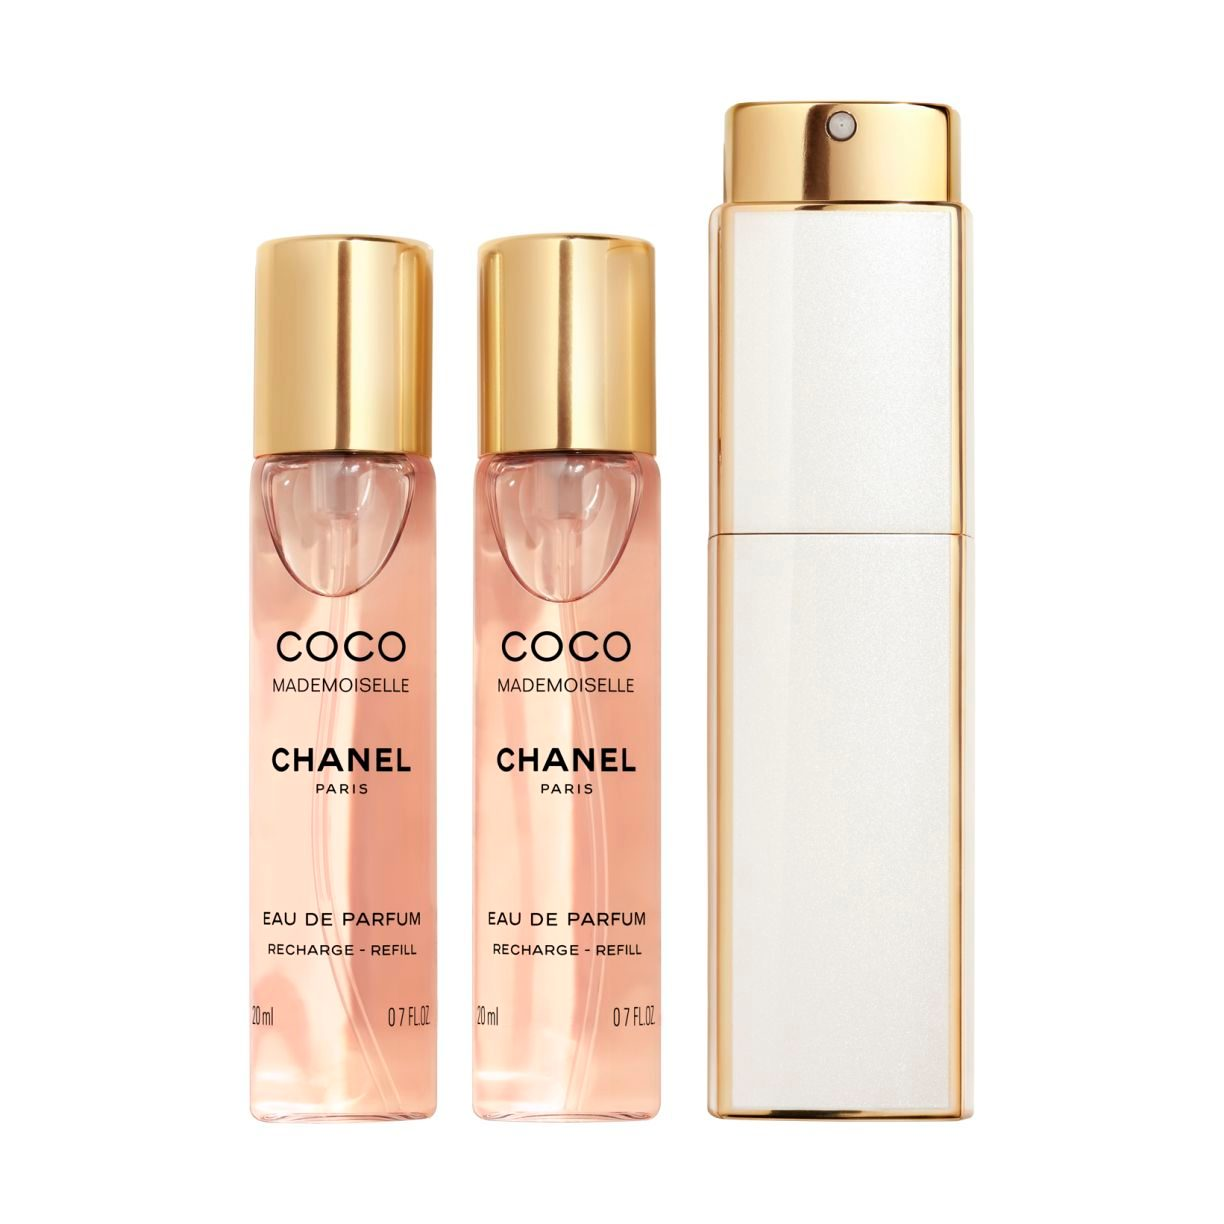 COCO MADEMOISELLE TWIST AND SPRAY Eau de Parfum rechargeable بخاخ برأس دوّار لماء العطر